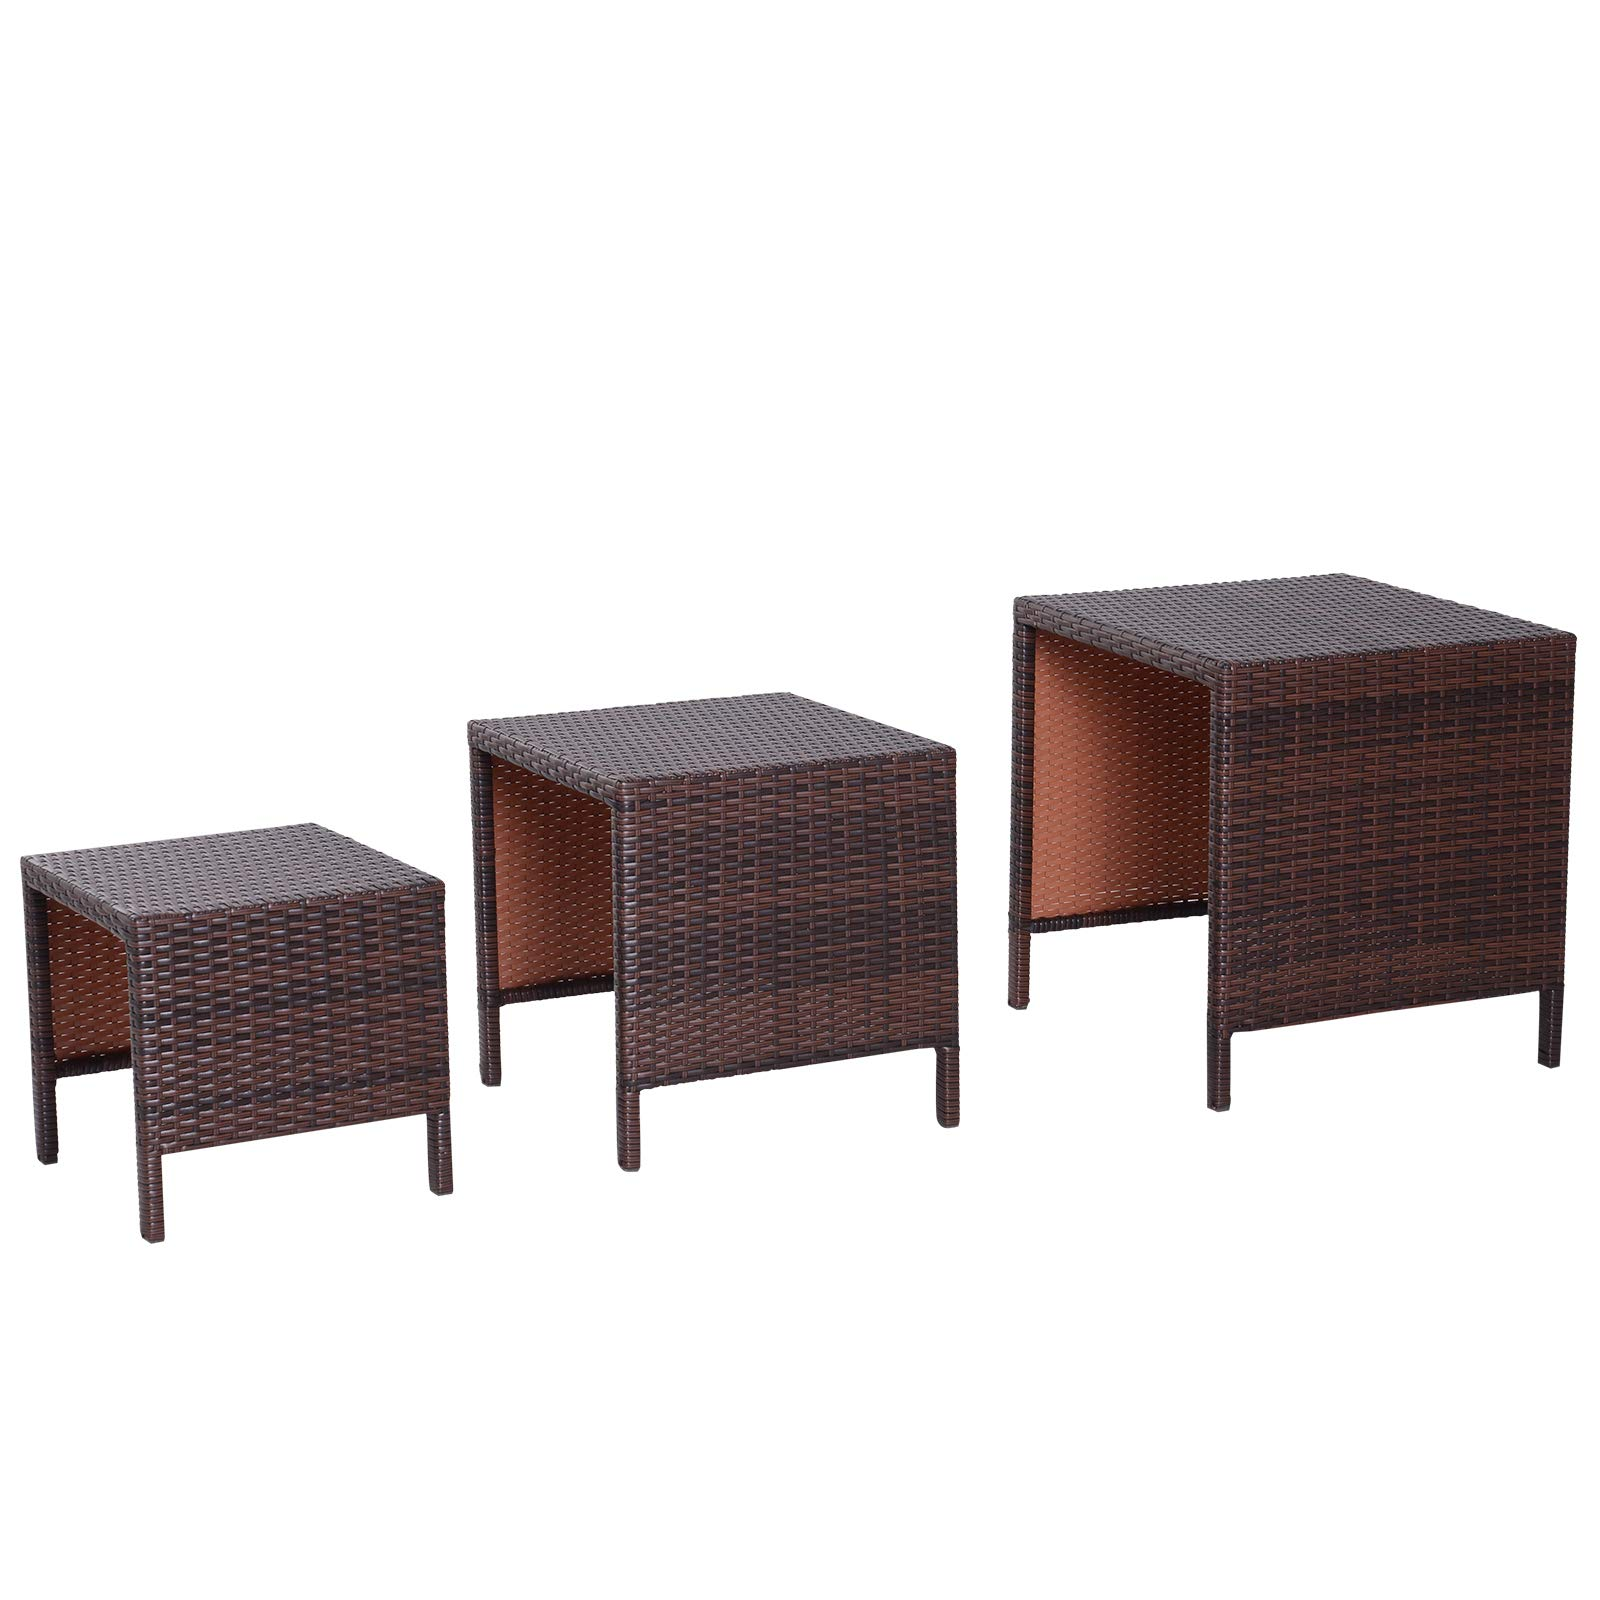 Outsunny 3 Piece Rattan Wicker Outdoor Compact Nesting Table Patio Dining Set